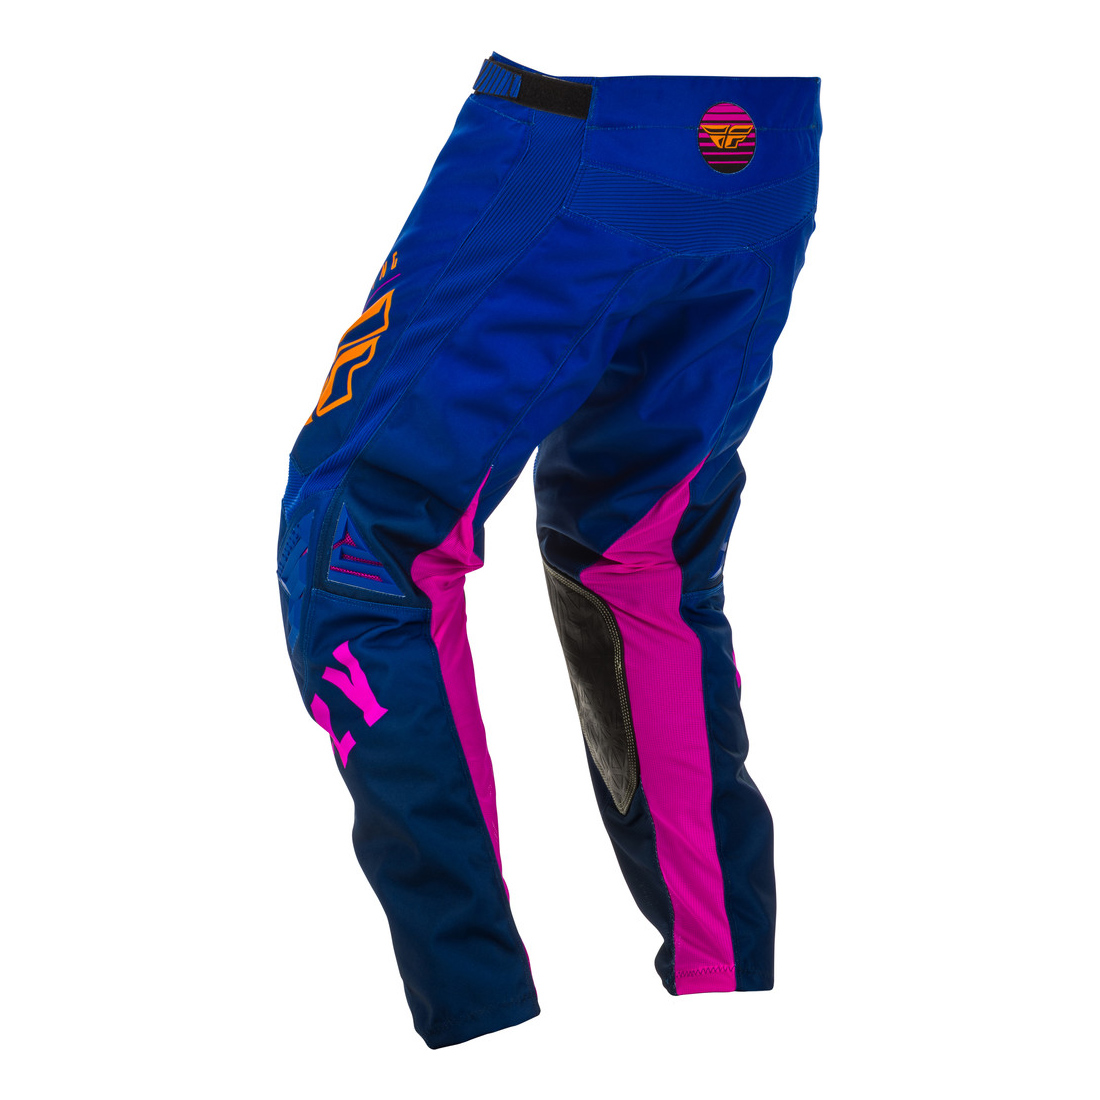 FLY YOUTH KINETIC K220 2020 PANTS